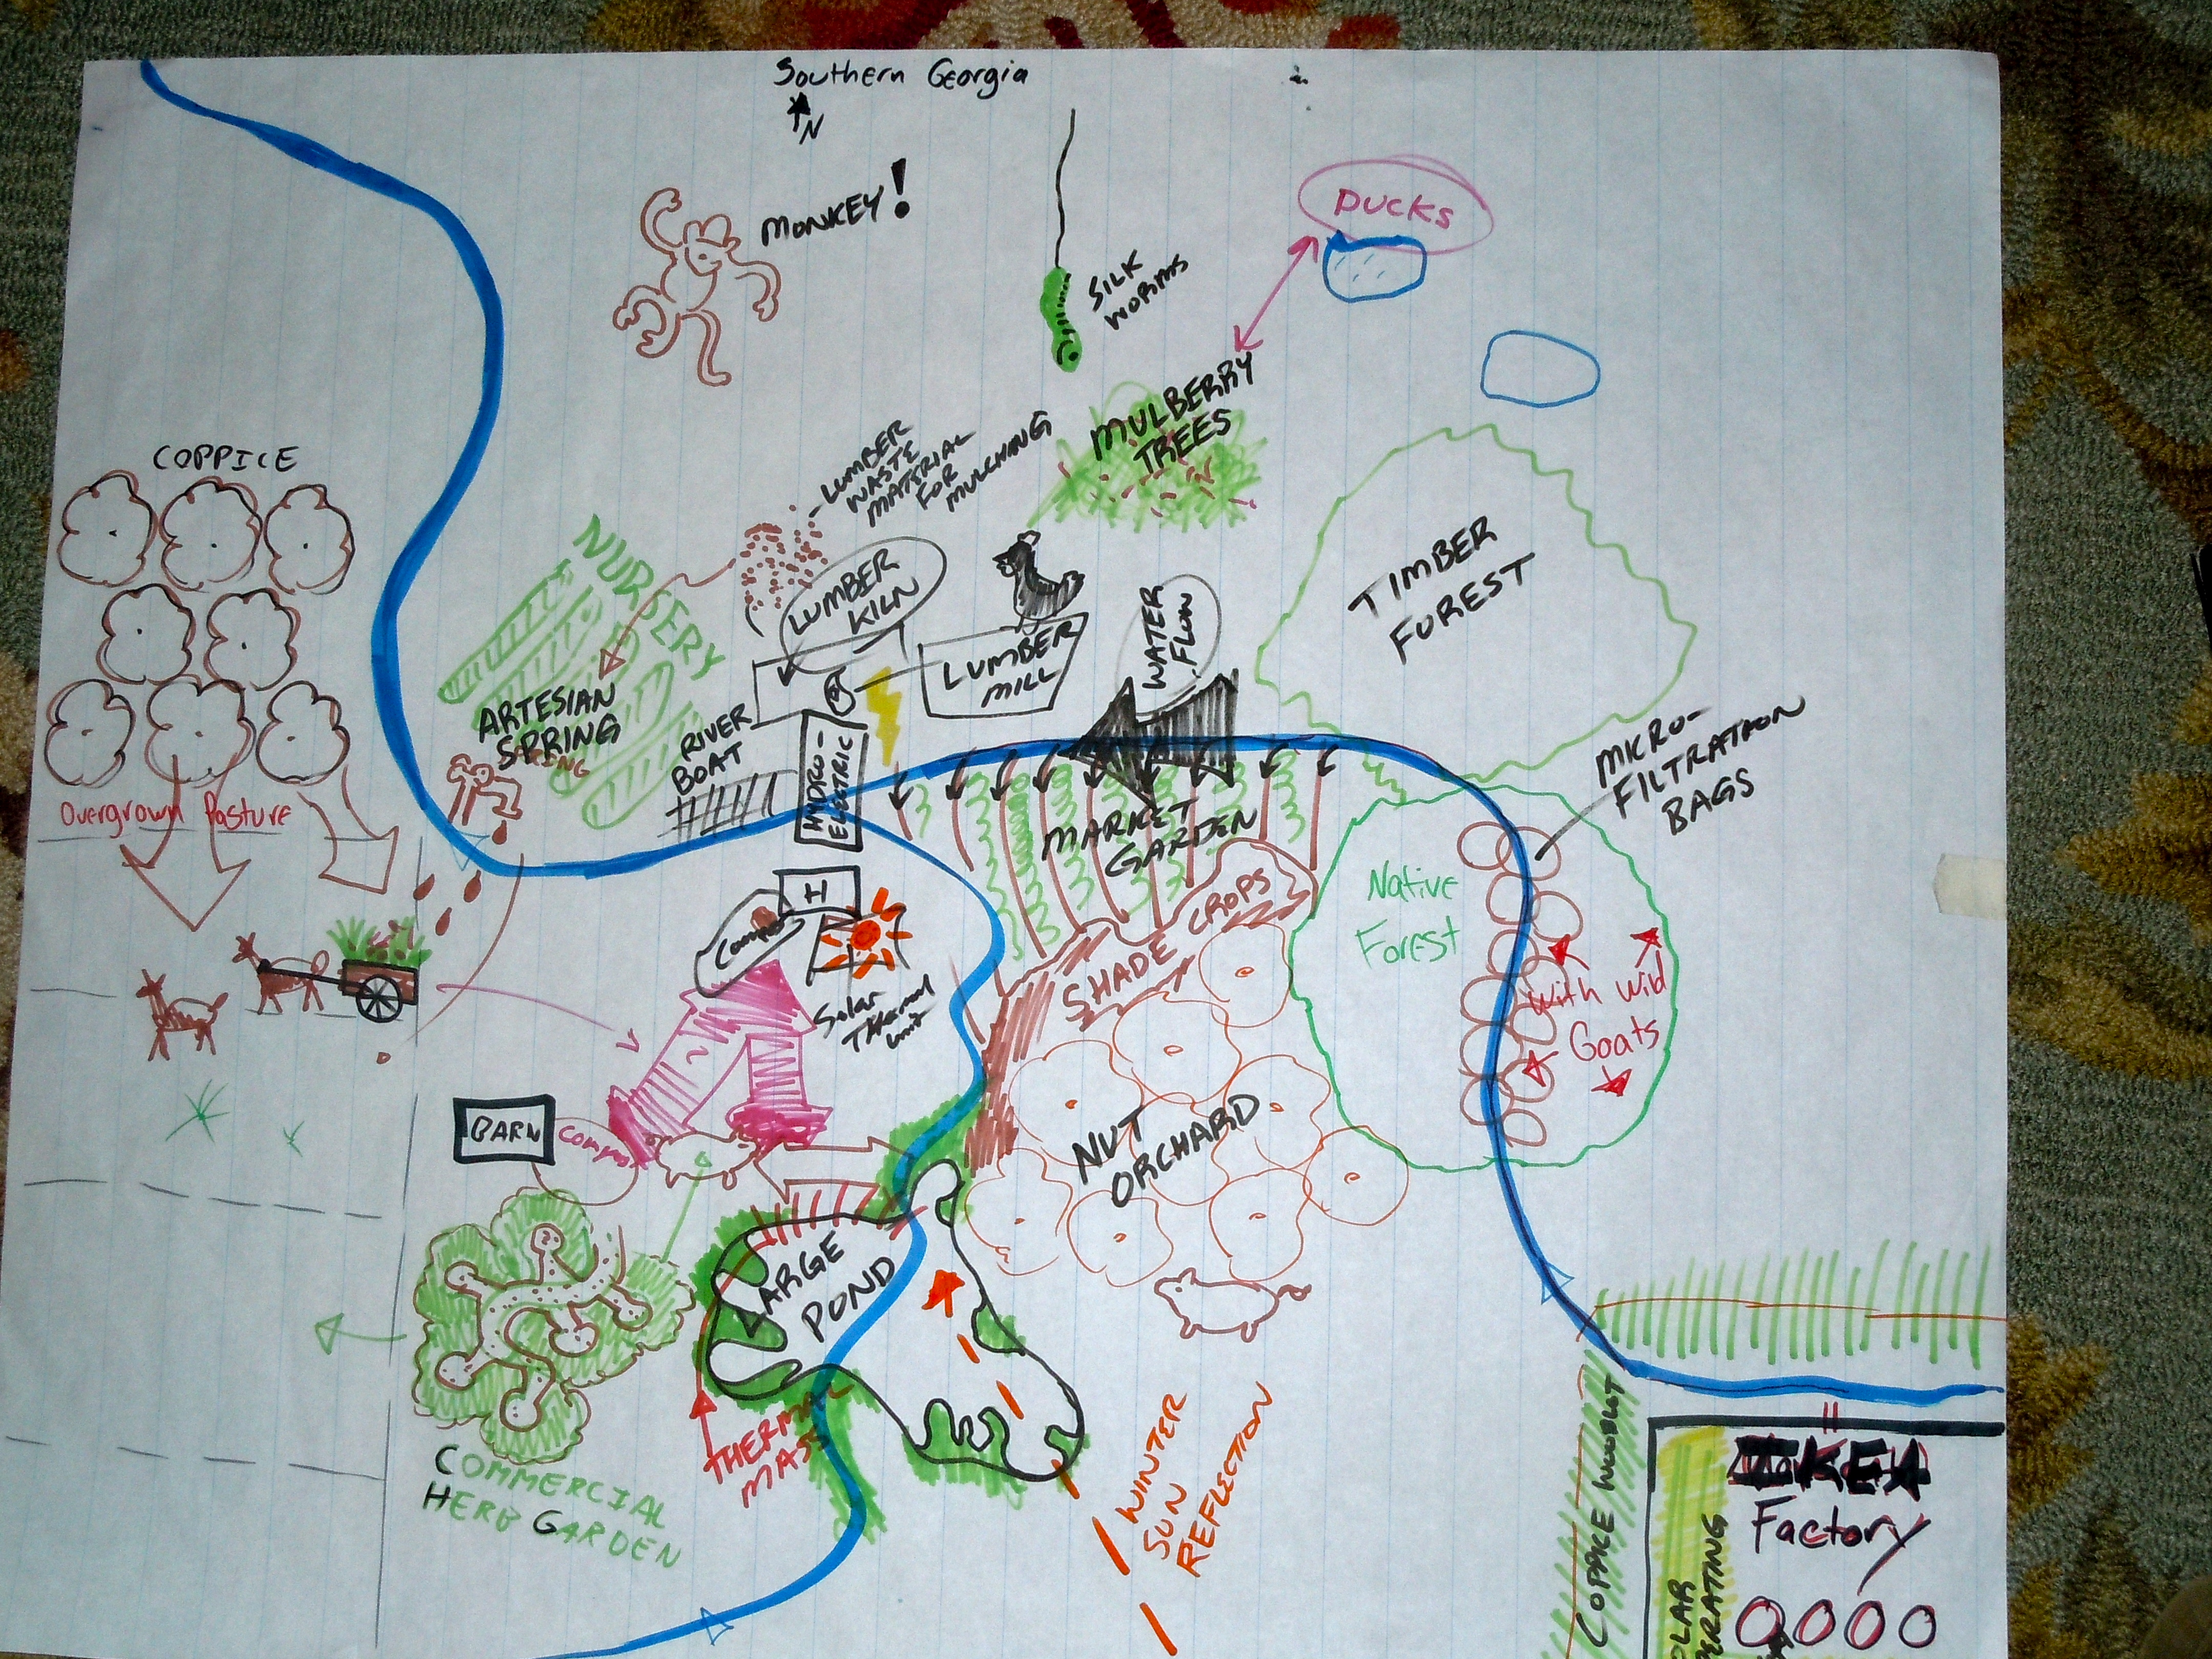 Conceptual Planning Phase | A Permaculture Design Course Handbook